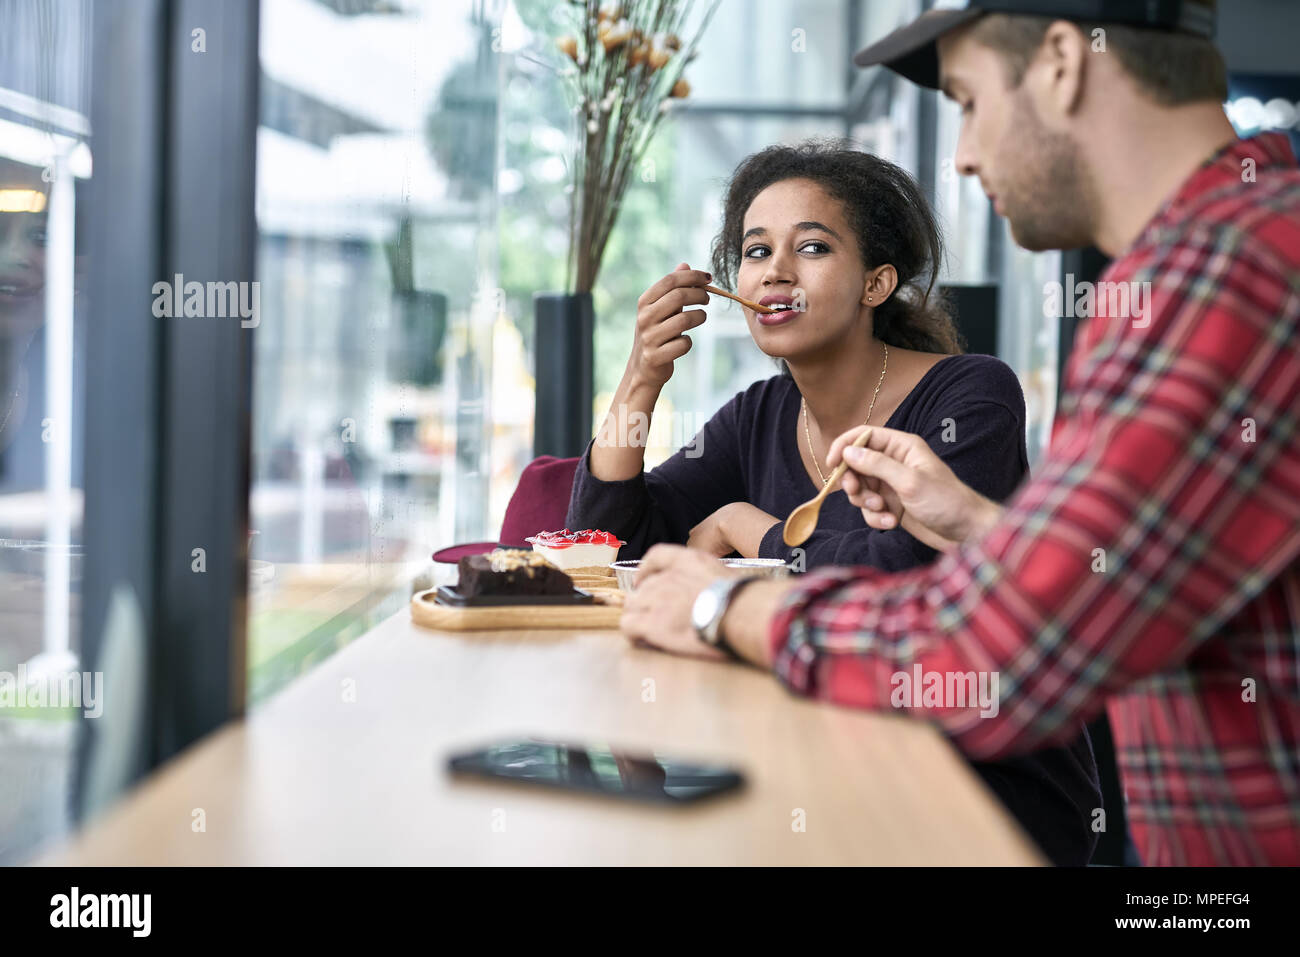 Dating of interracial couple - Stock Image